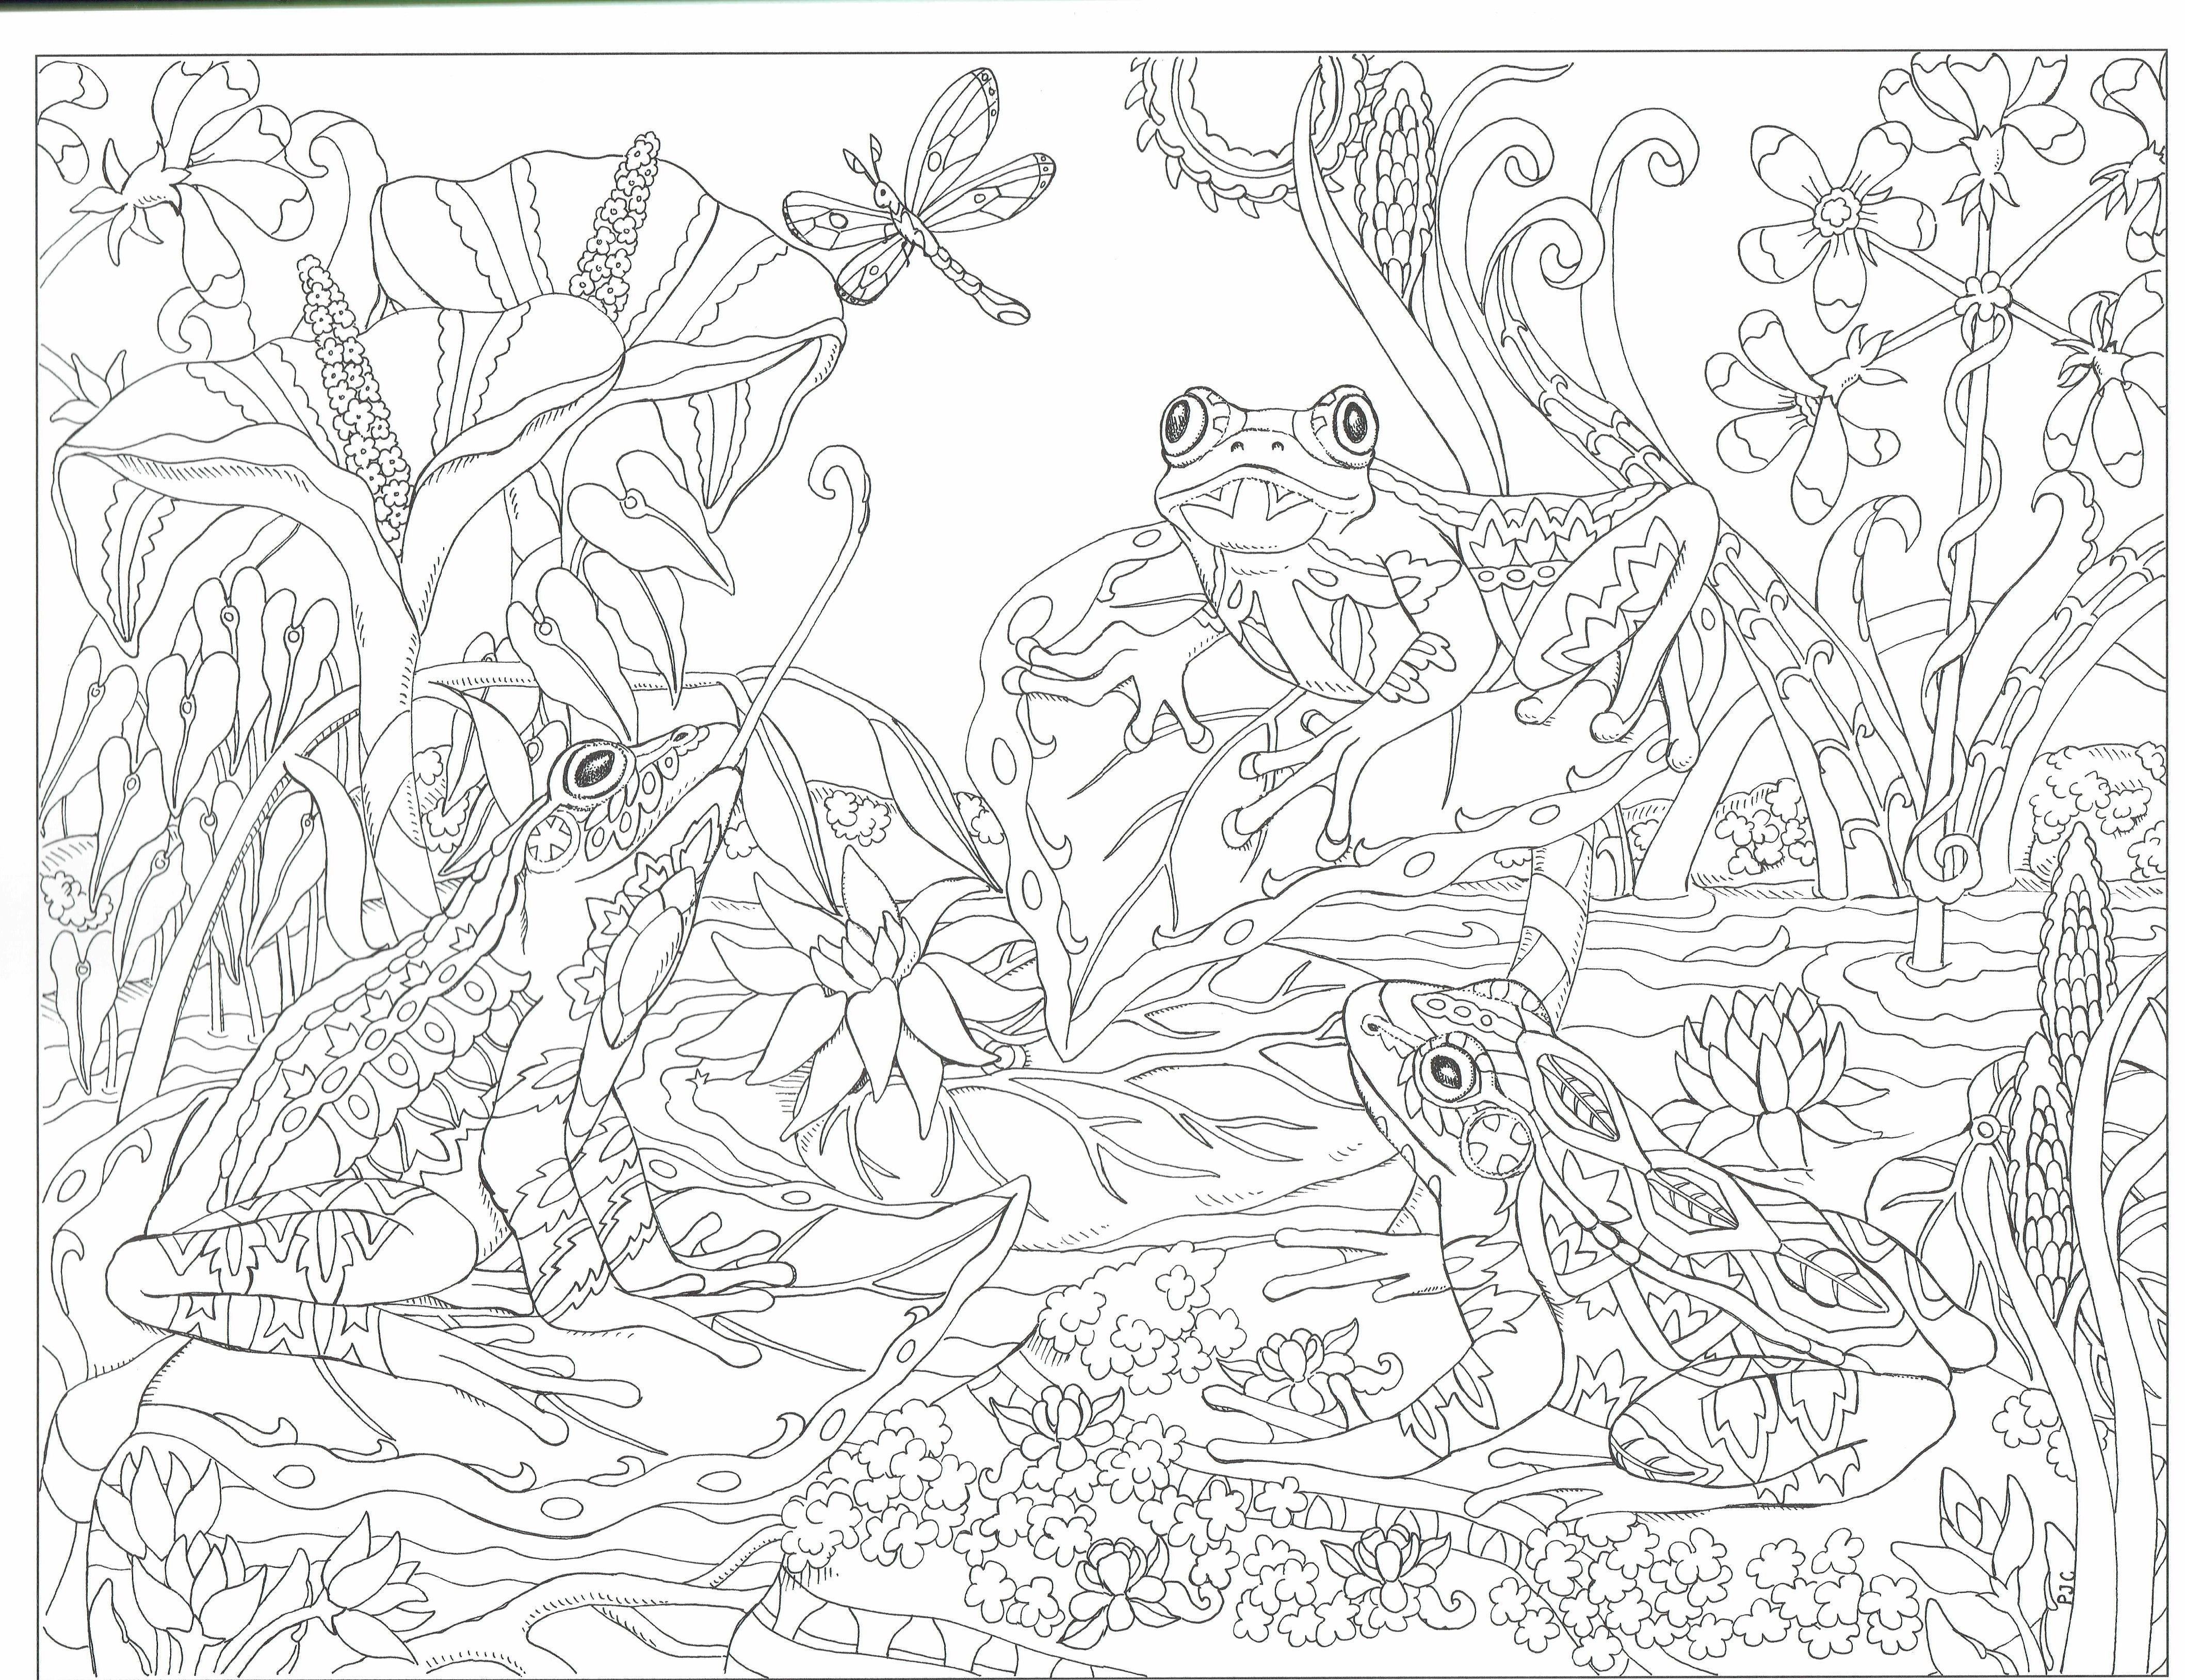 Frog Pond Color Me Your Way Page Angel Coloring Pages Fairy Coloring Dover Coloring Pages [ 3256 x 4235 Pixel ]